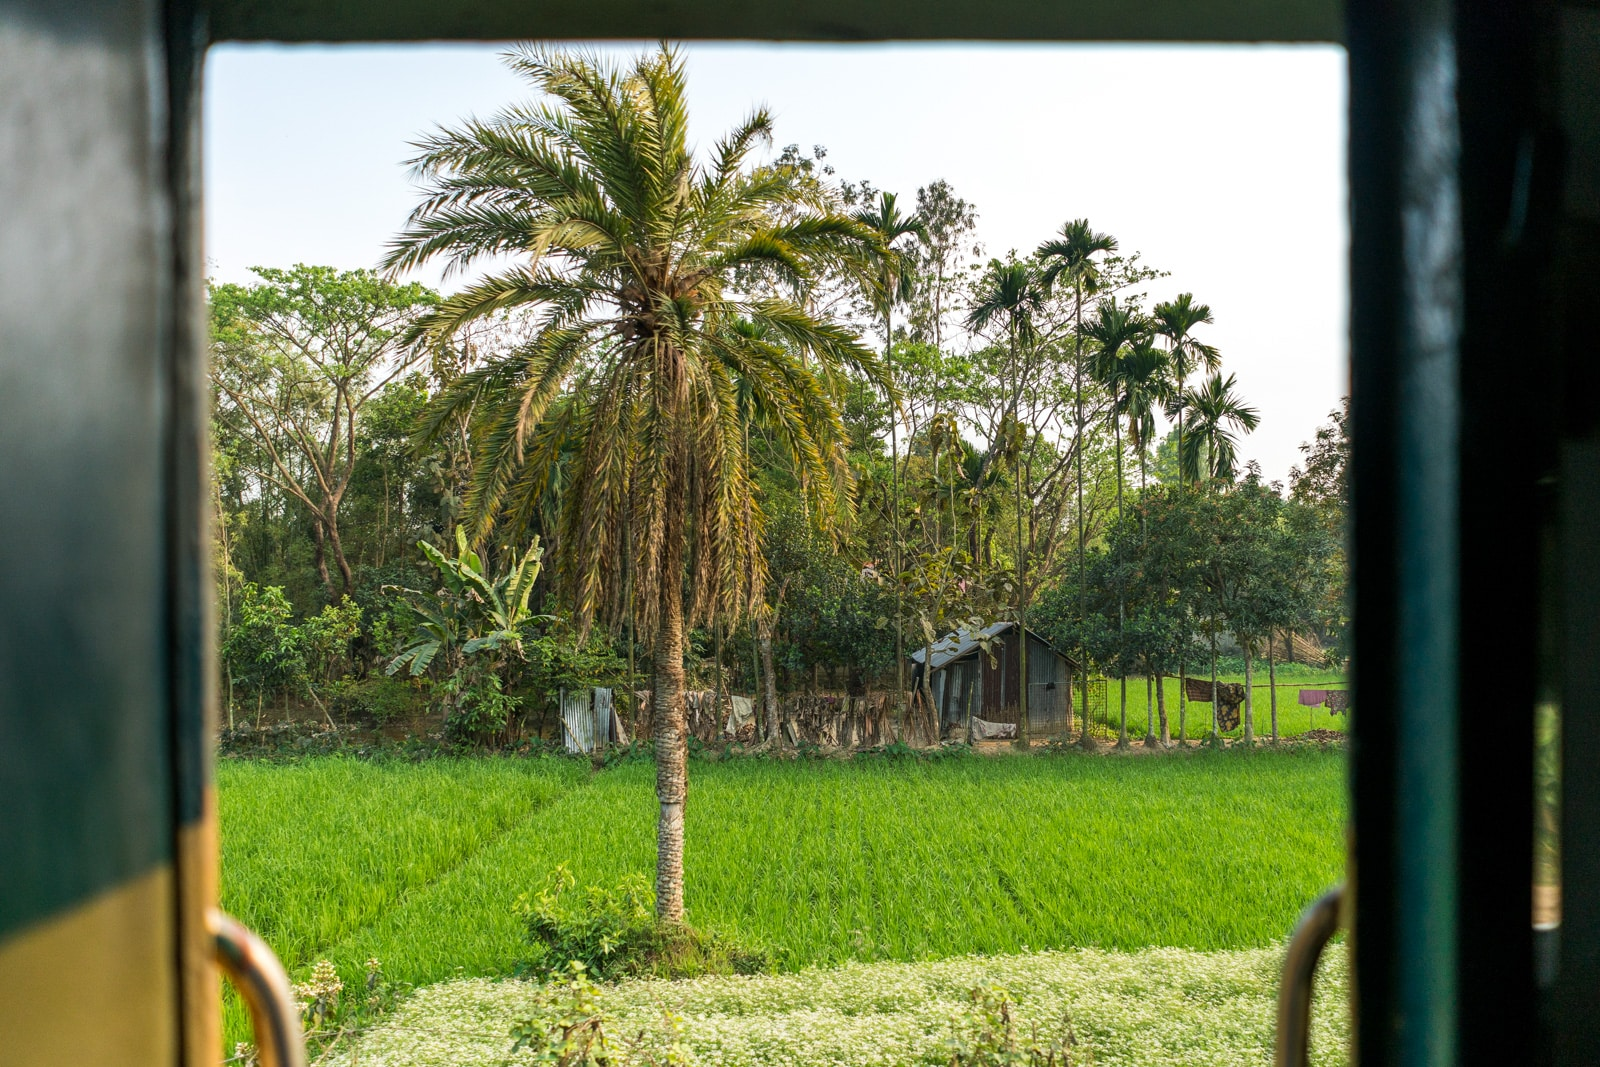 Backpacking in Bangladesh travel guide - Green out of open train door - Lost With Purpose travel blog